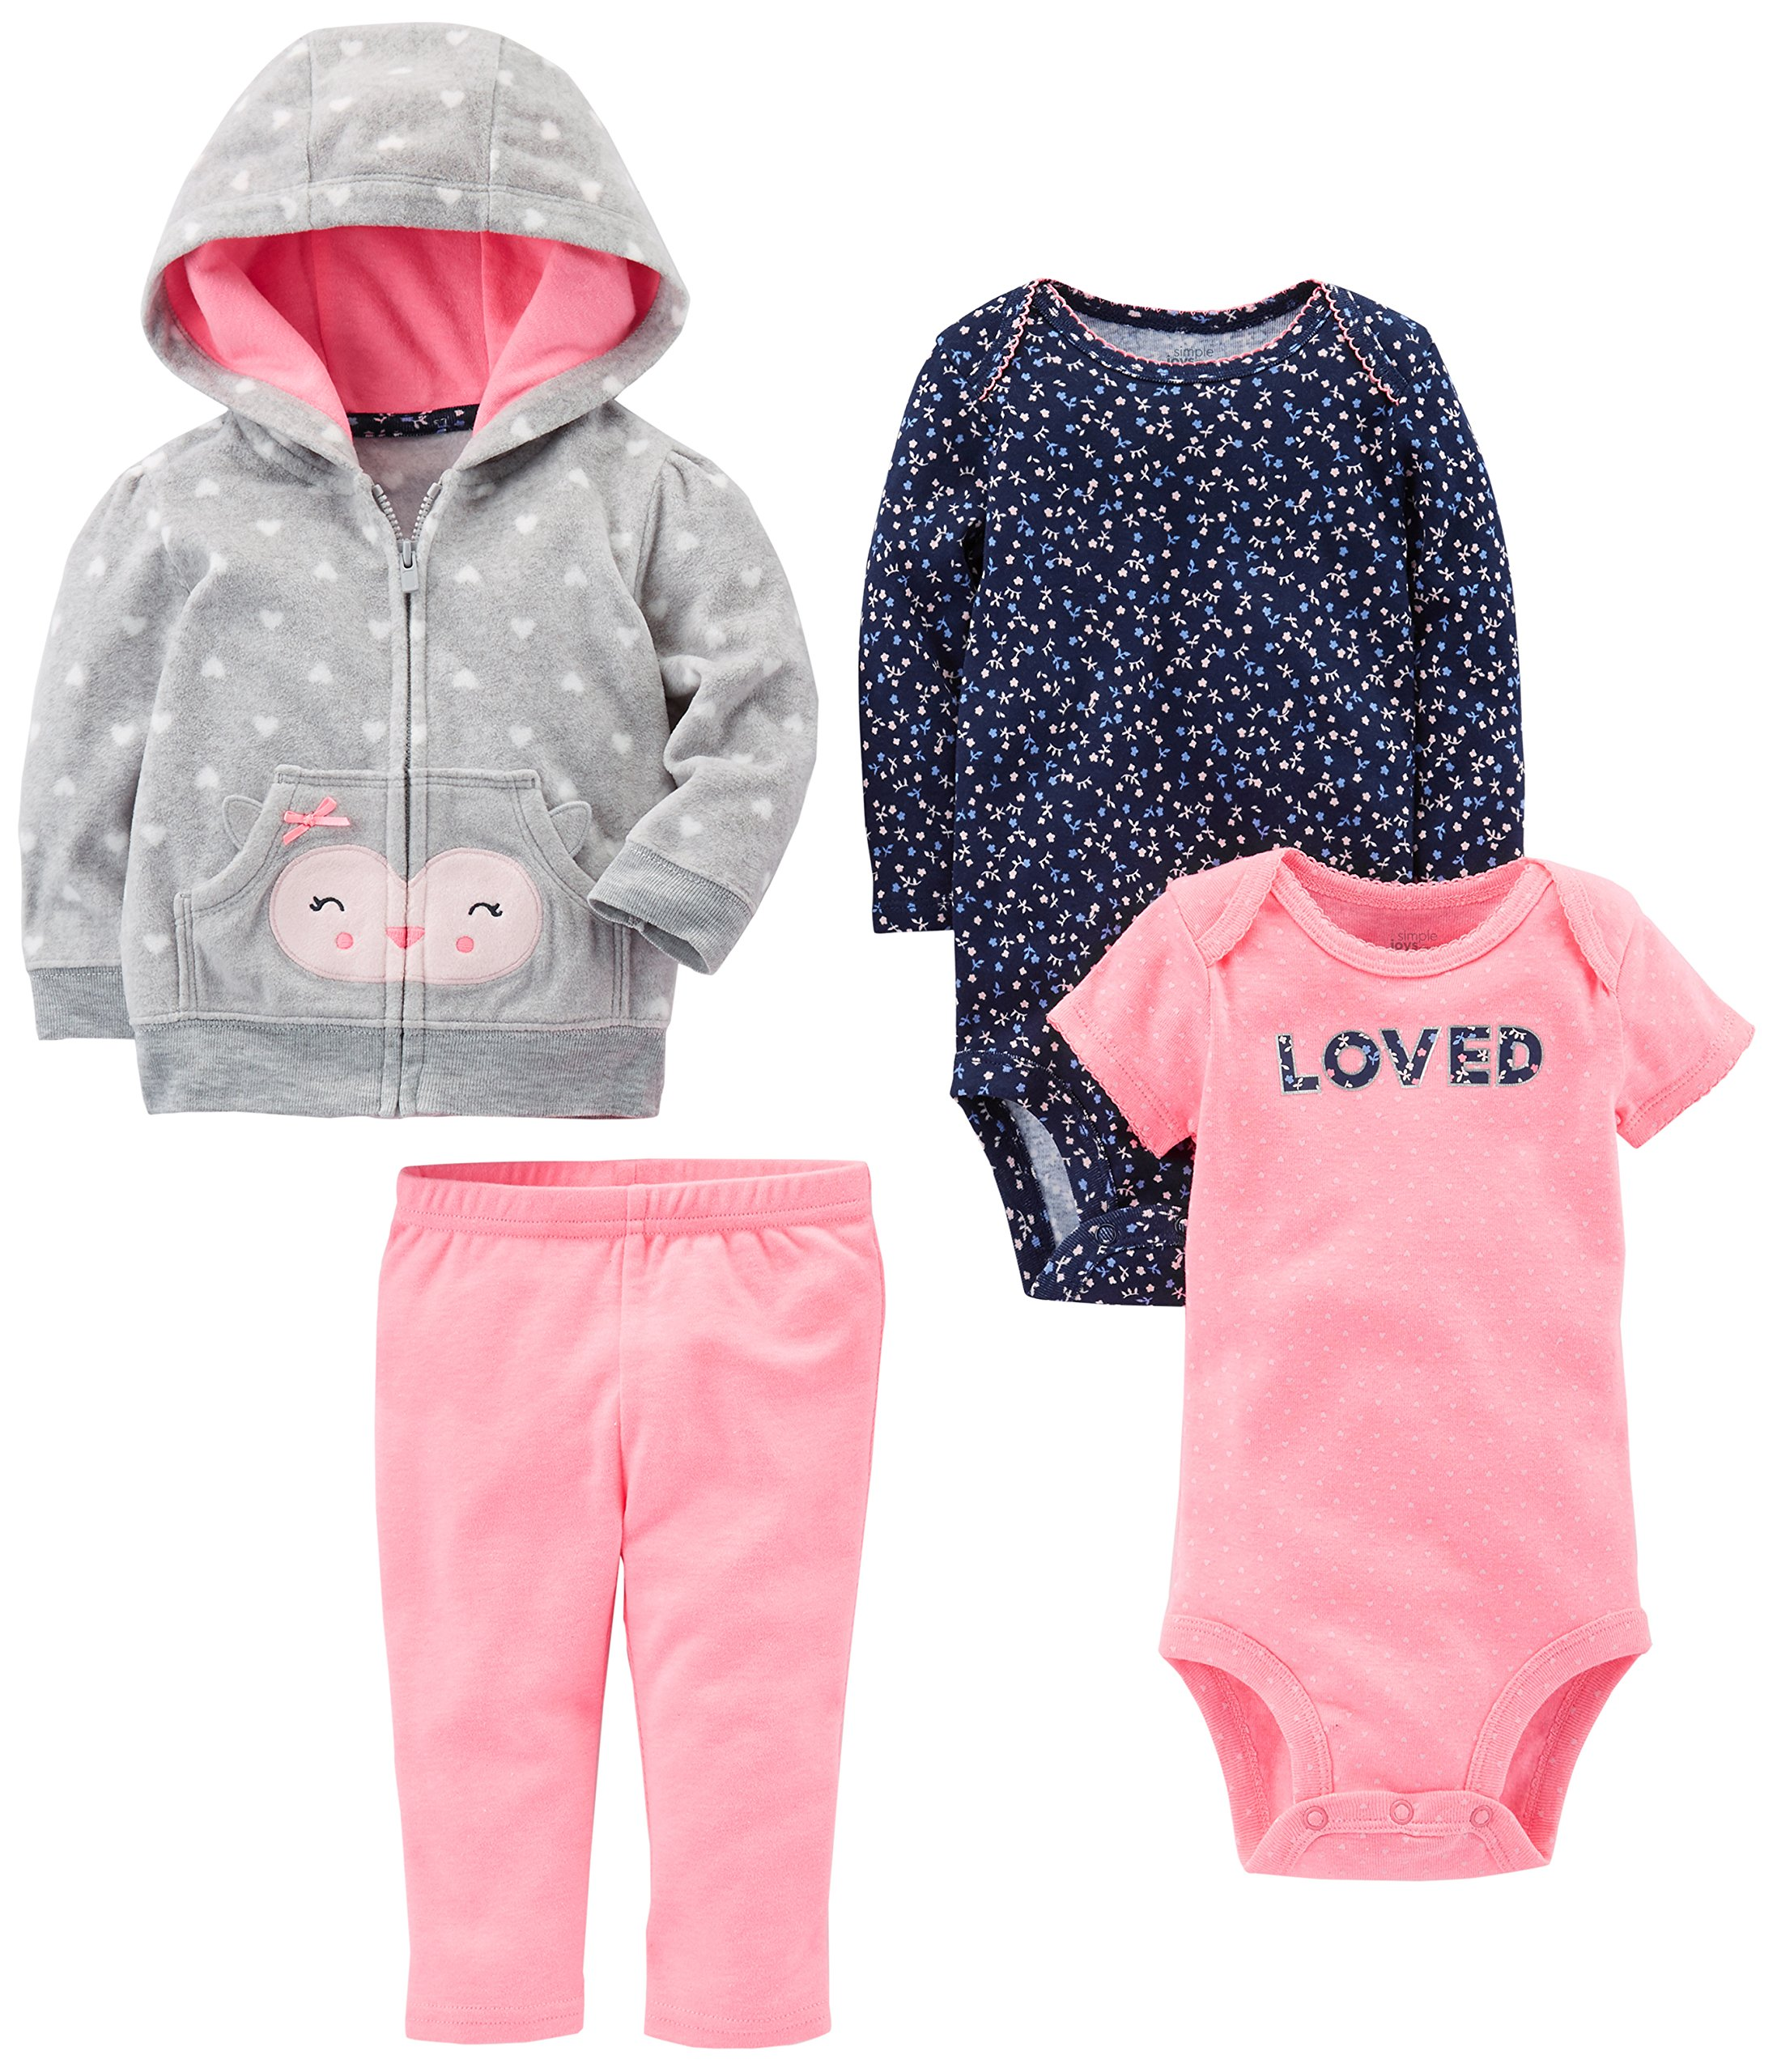 e20ecf9e8 Best Rated in Baby Girls  Clothing Sets   Helpful Customer Reviews ...